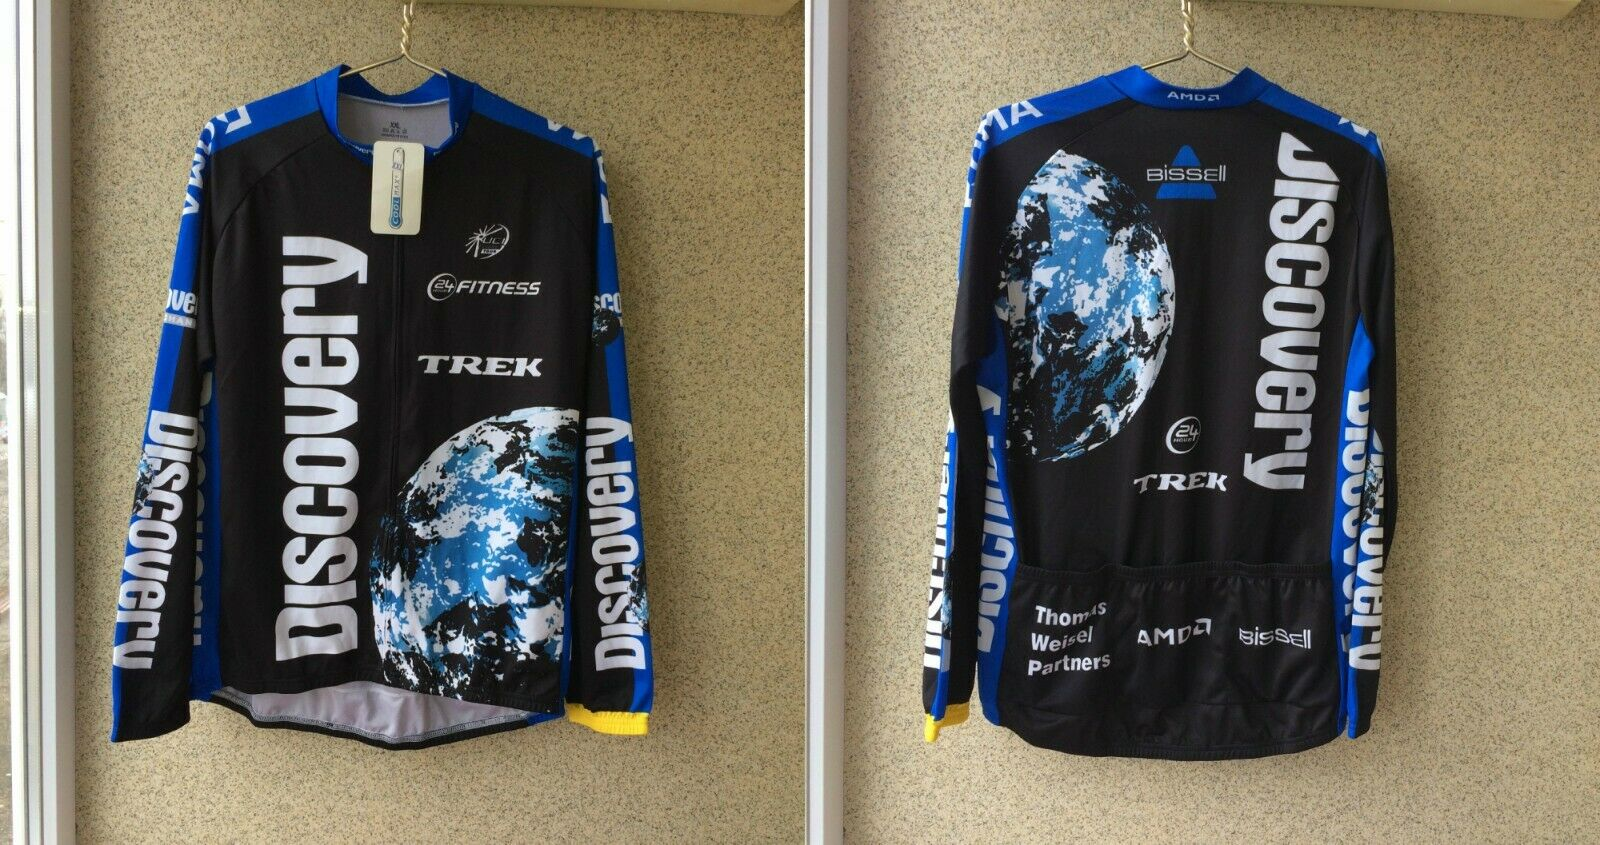 BIKE CYCLING JERSEY SHIRT MAILLOT CYCLISM TEAM DISCOVERY CHANNEL 2XL Camiseta